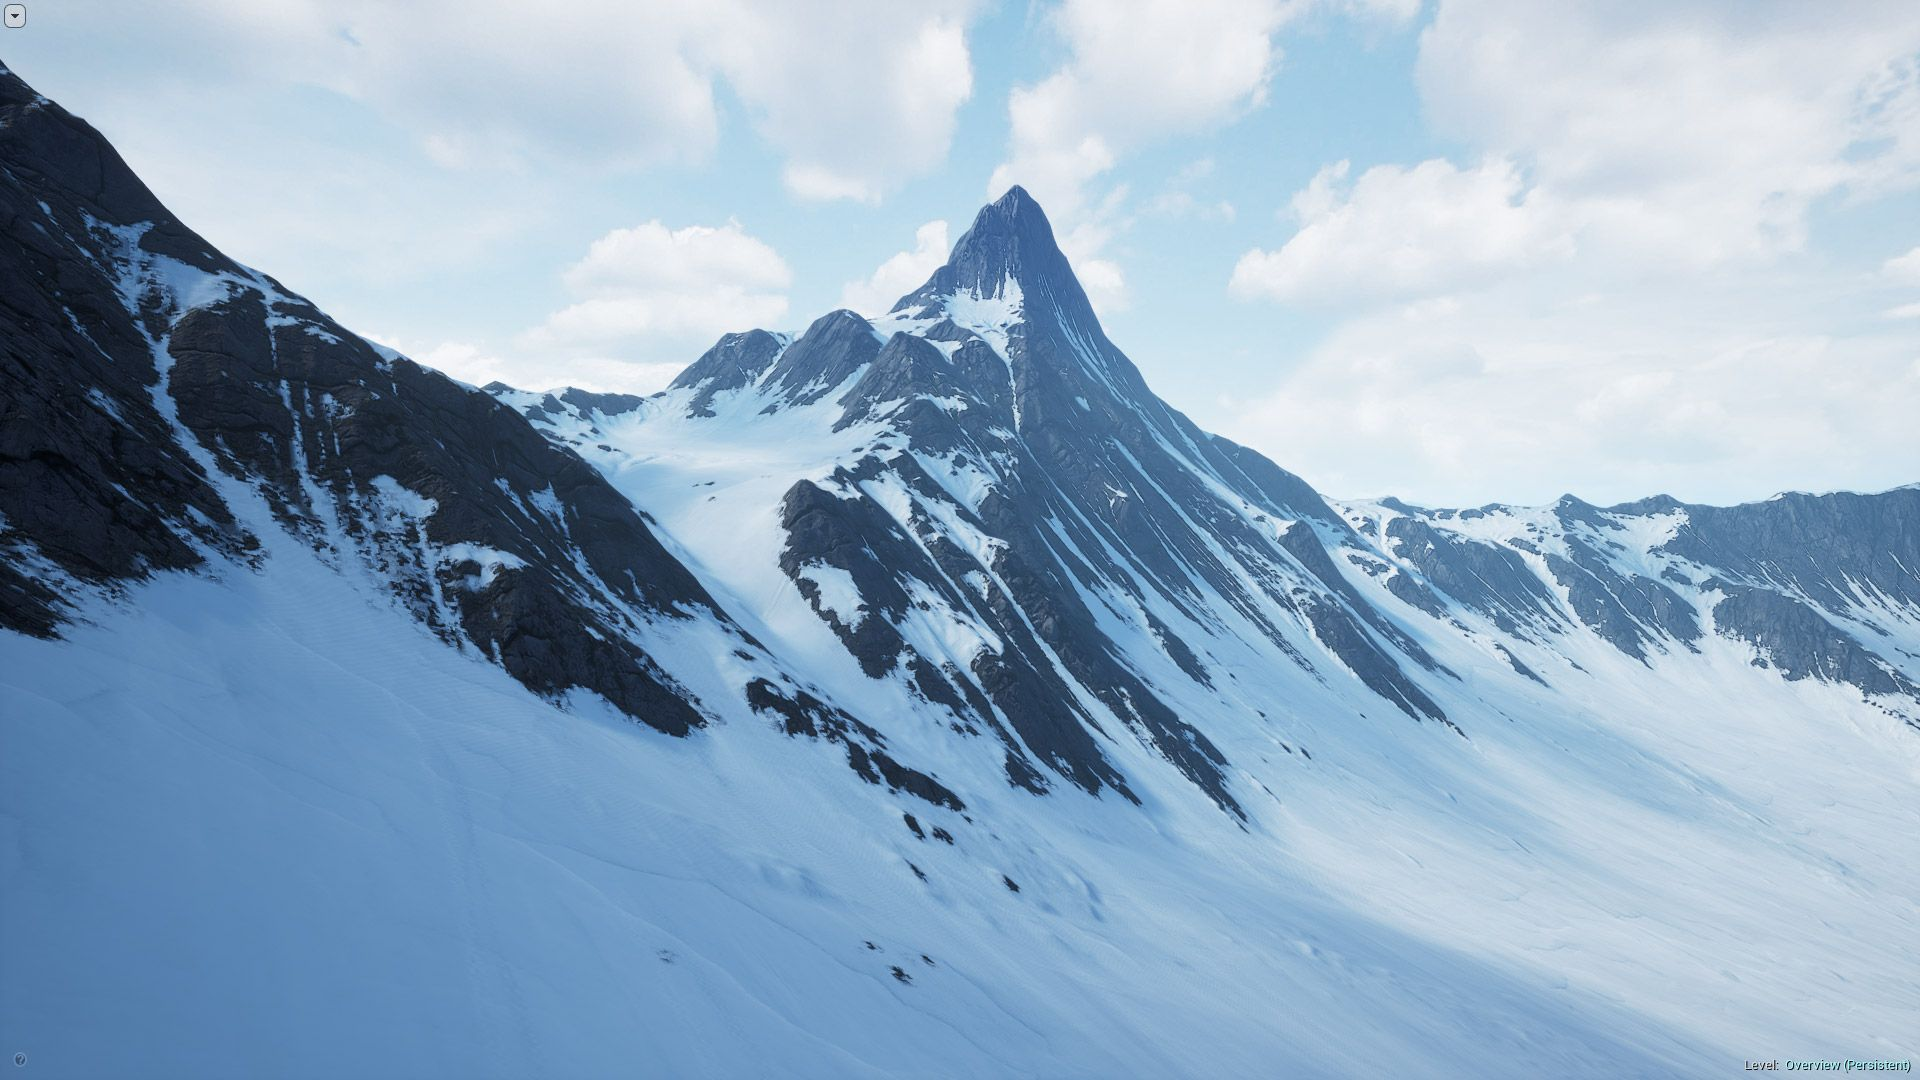 Snowy Mountains Landscape By Pixel Perfect Polygons In 环境 Ue4 Marketplace Arctic Landscape Mountain Landscape Landscape